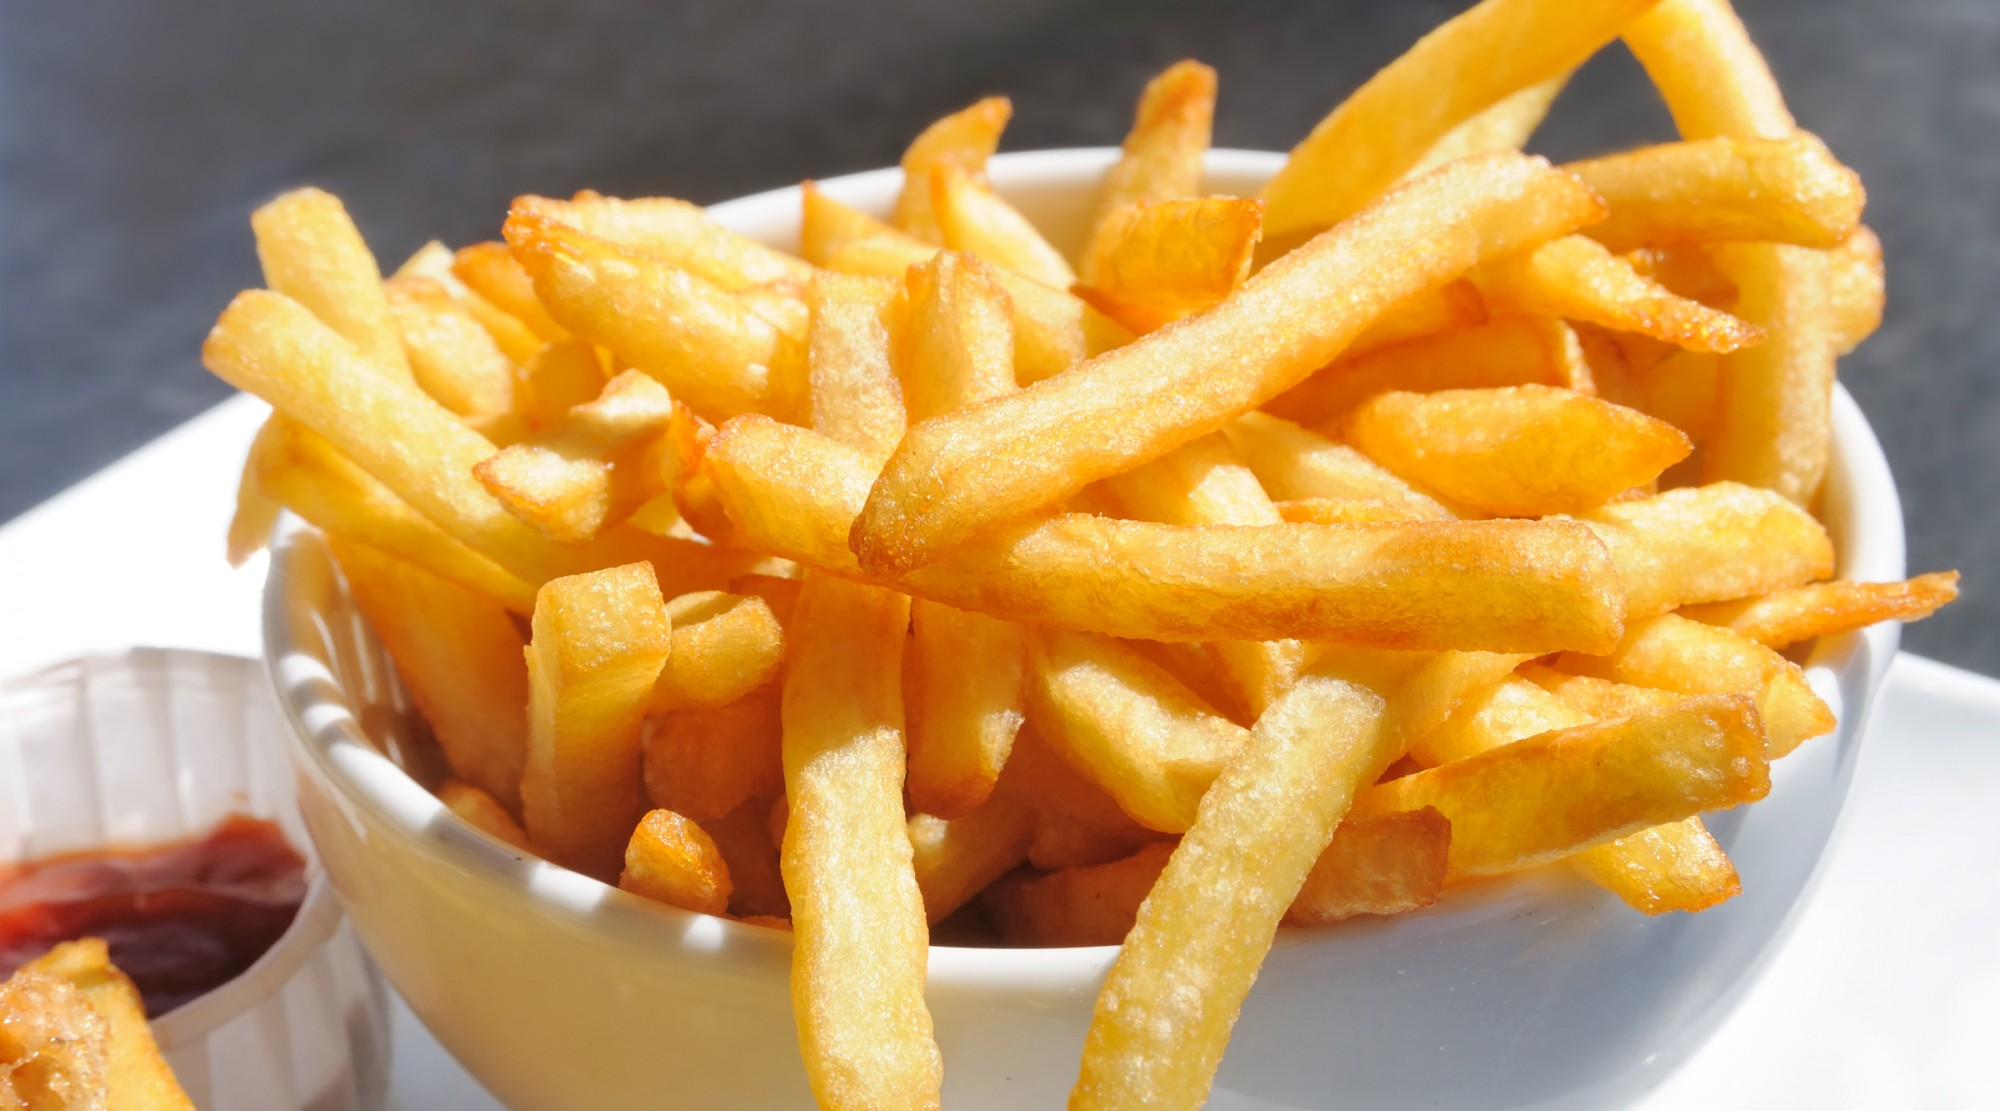 French fry photo